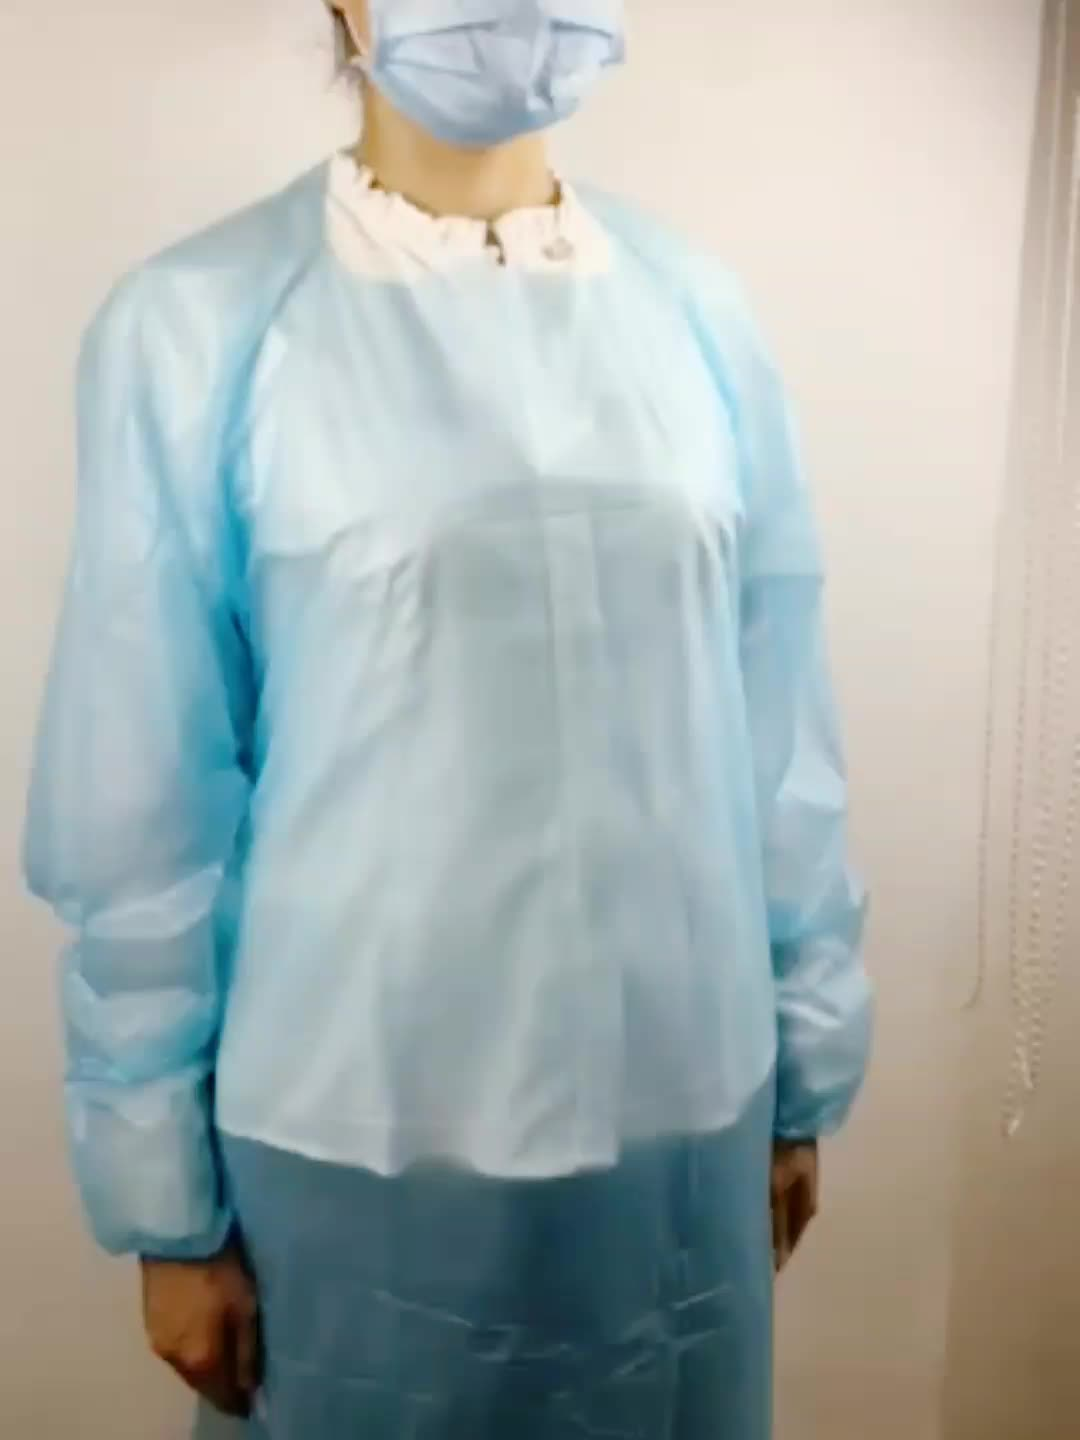 disposable surgical gown hospital medical CPE gown